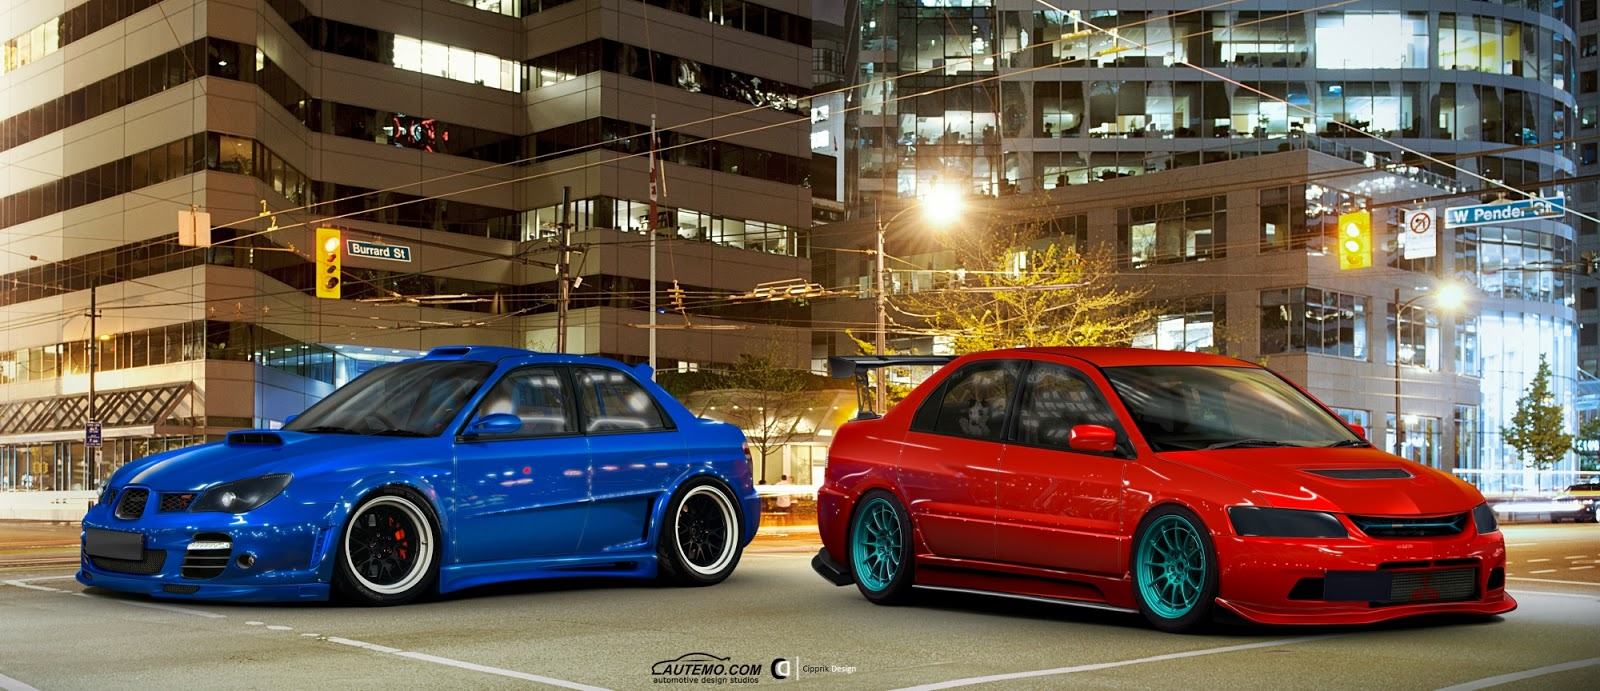 Two of the fiercest rivals in automotive history are without a doubt the subaru impreza in its wrx sti version and